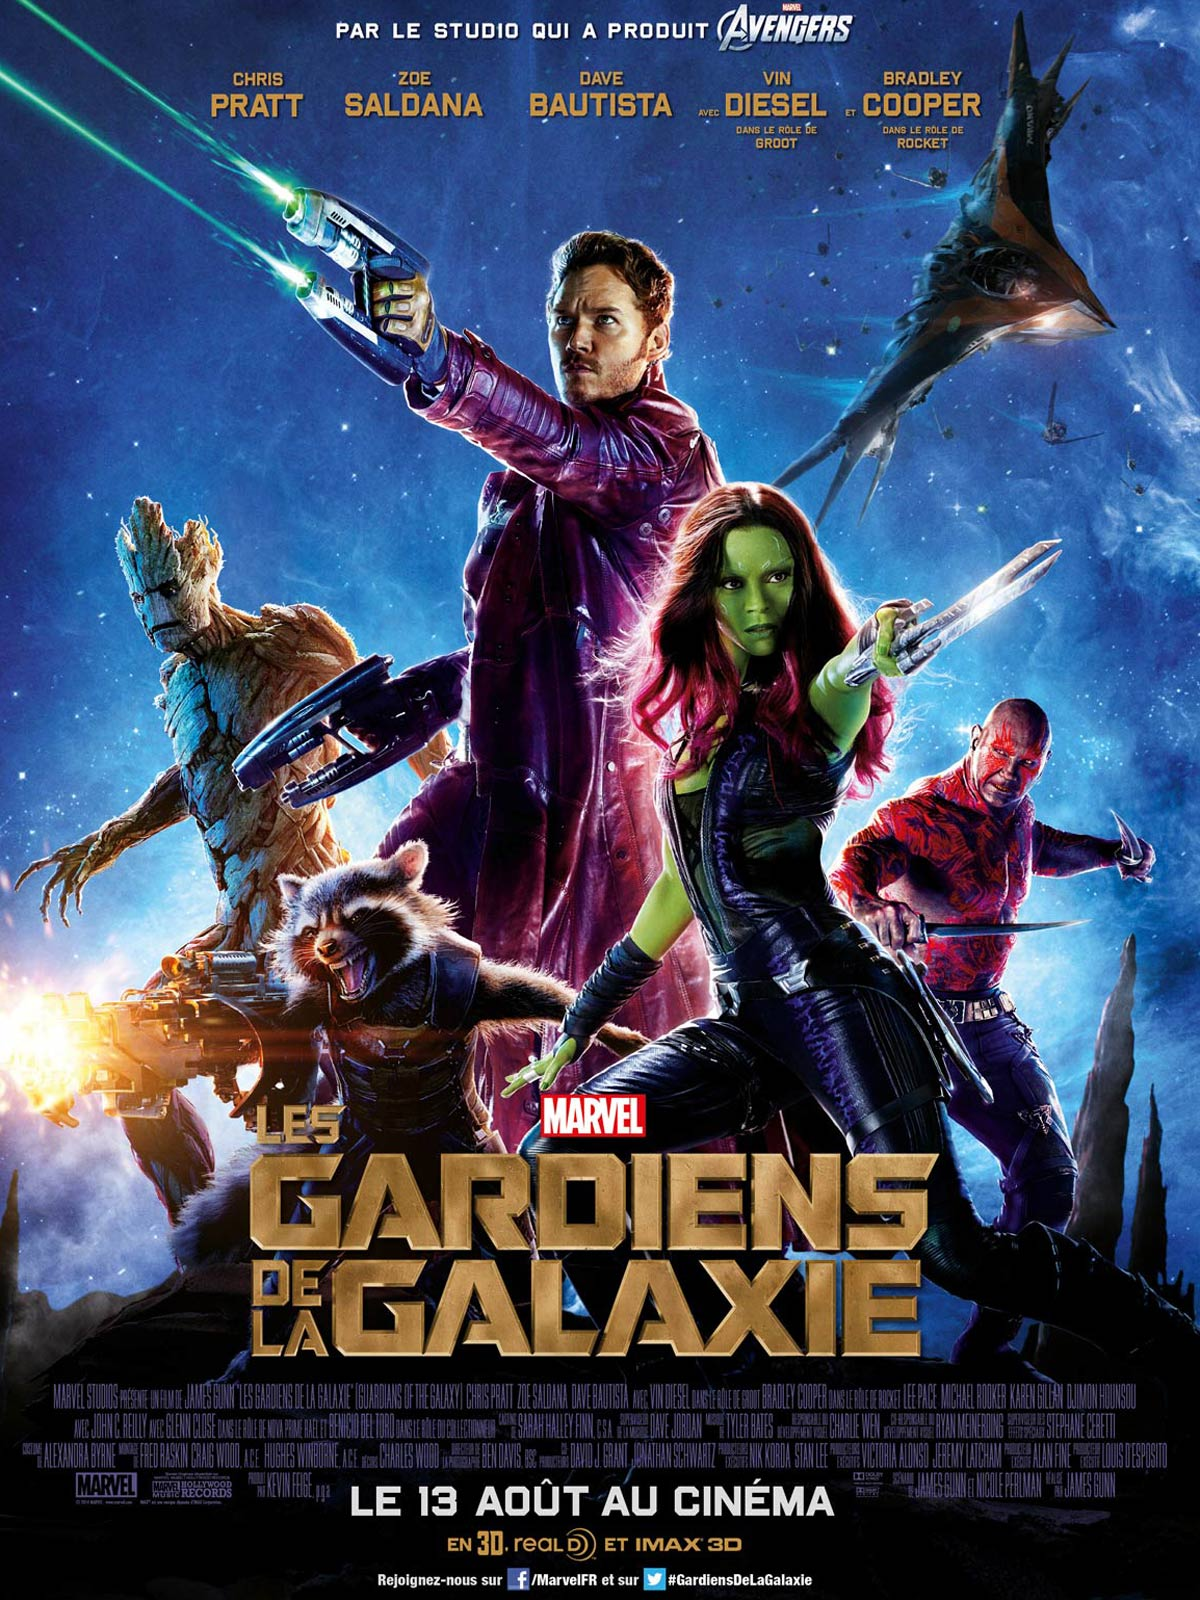 Les Gardiens de la Galaxie [2014]  production Disney 405662